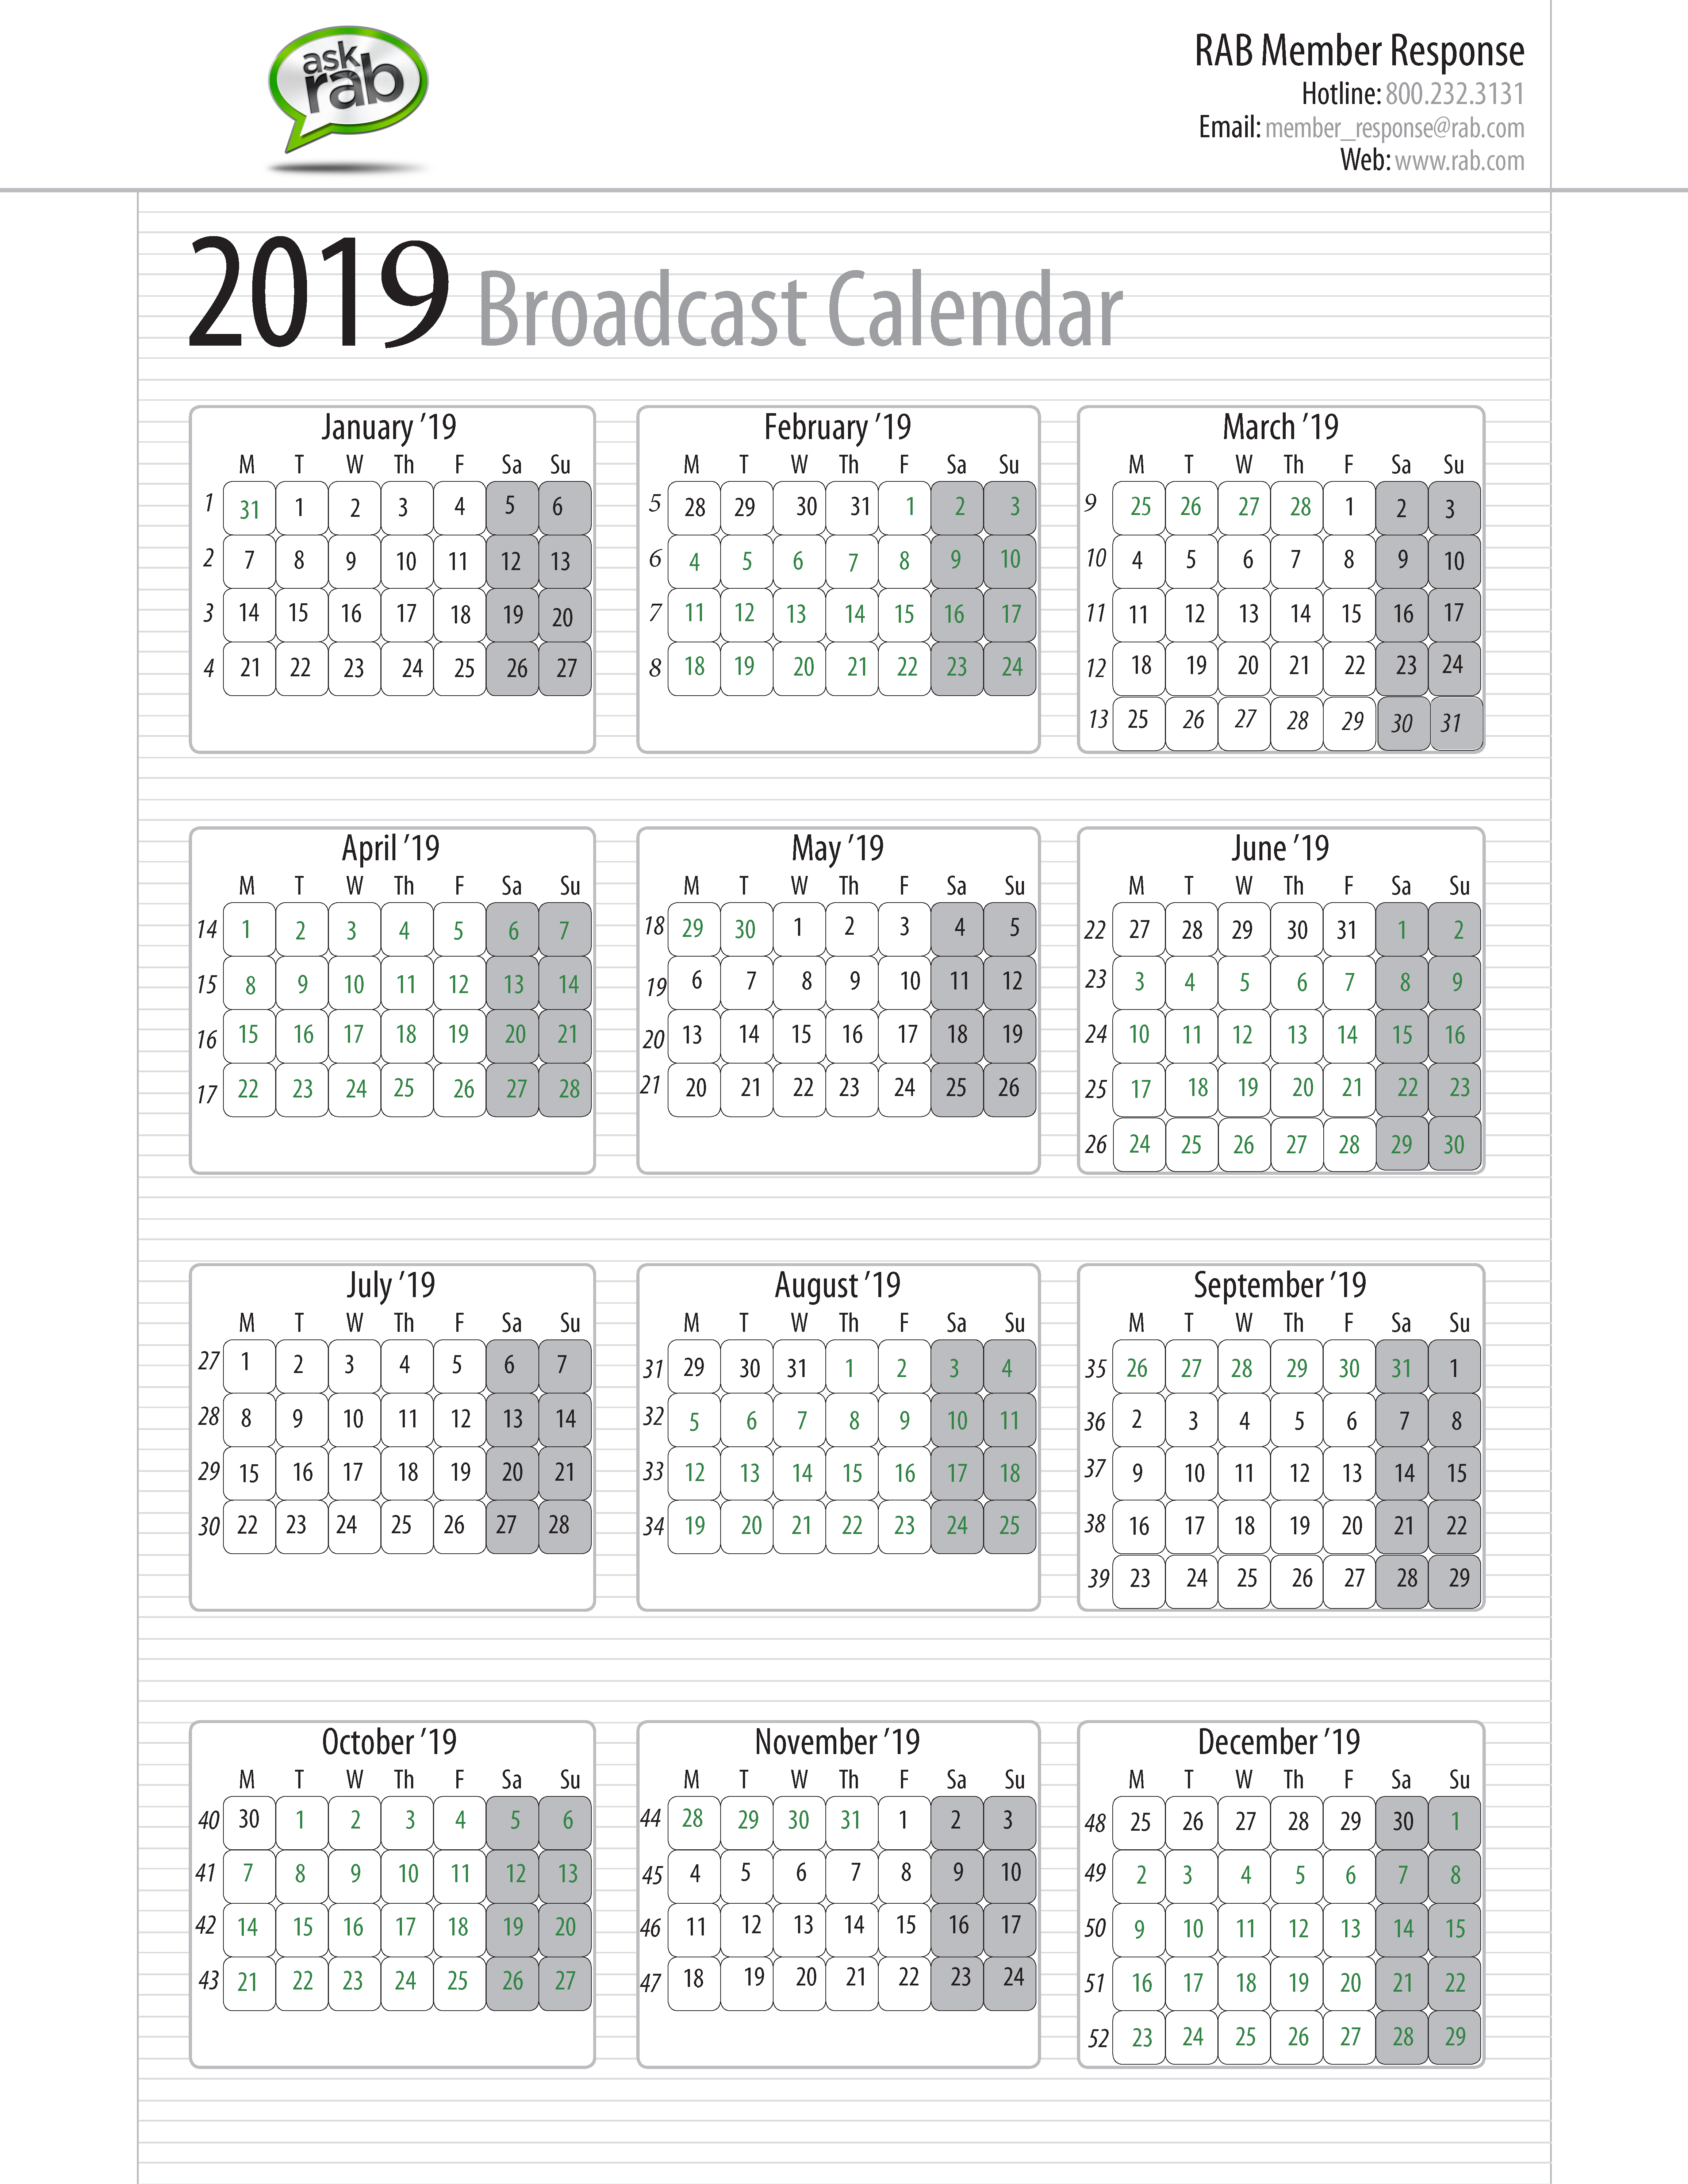 Calendar For Year 2019 Canada With Broadcast Calendars RAB Com